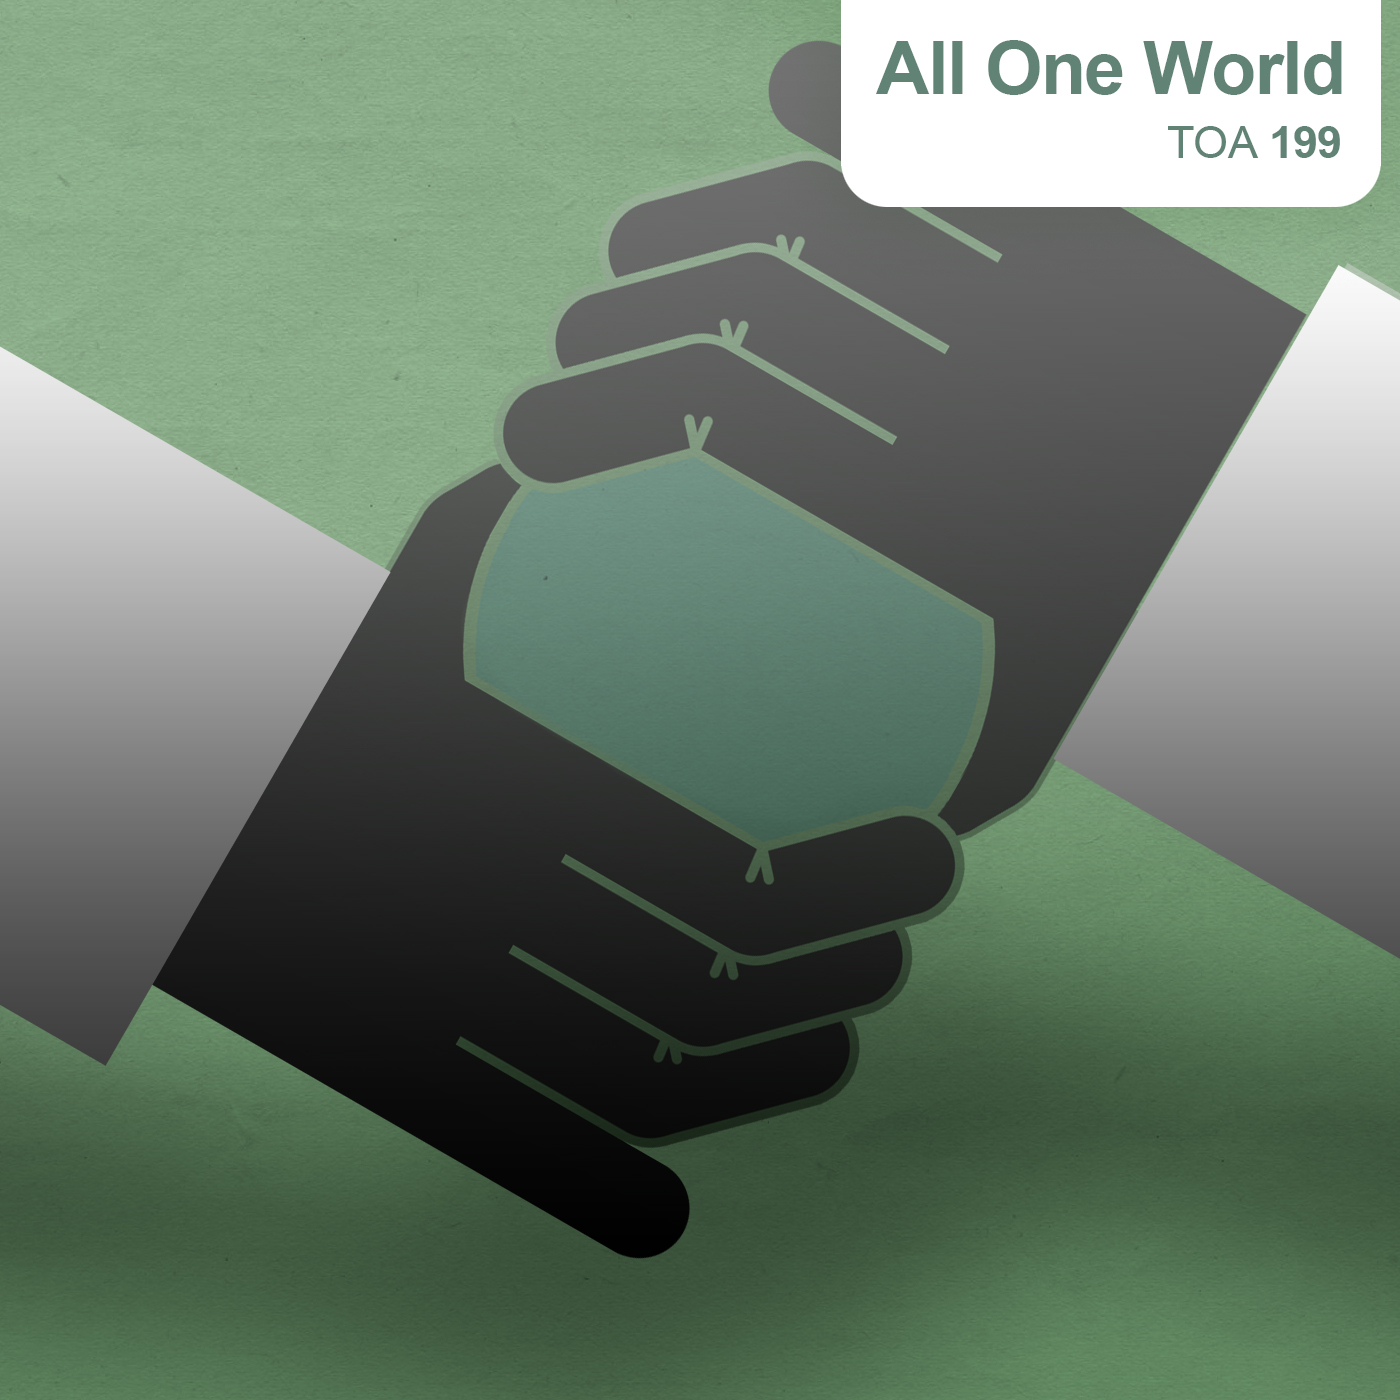 All One World